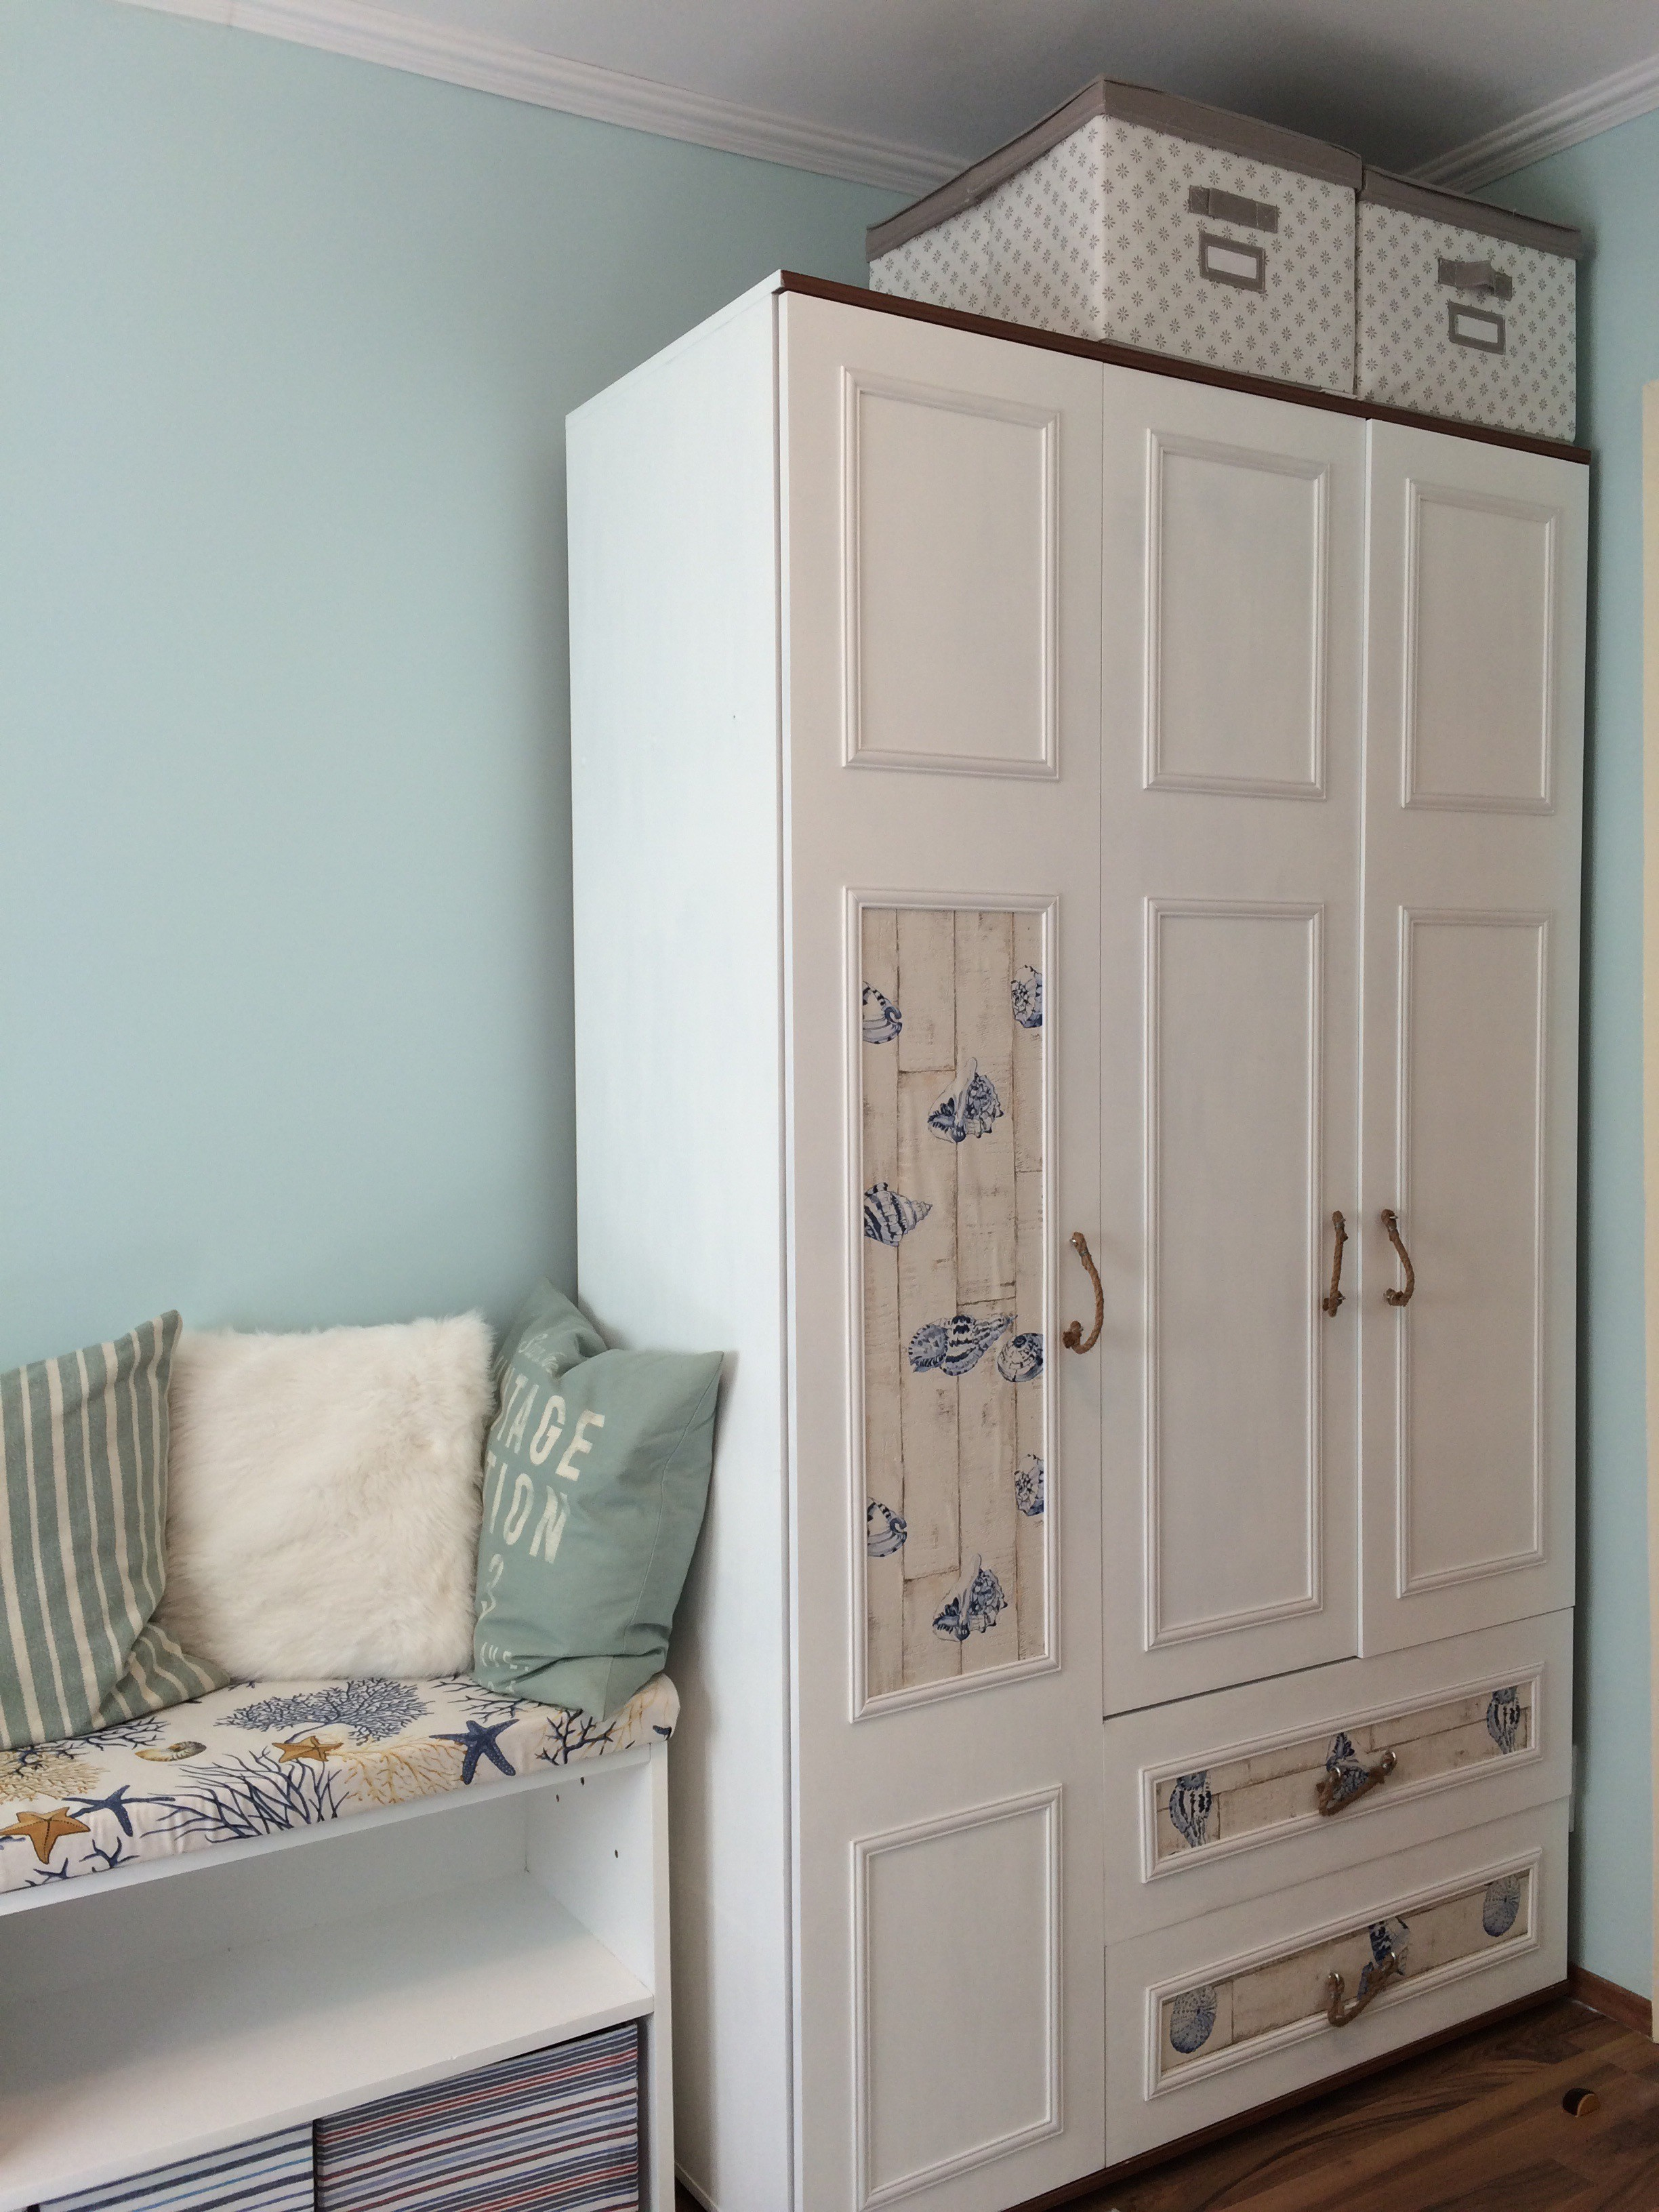 7 Redecorate your Cabinet with a nautical theme and new trim via Simphome 1